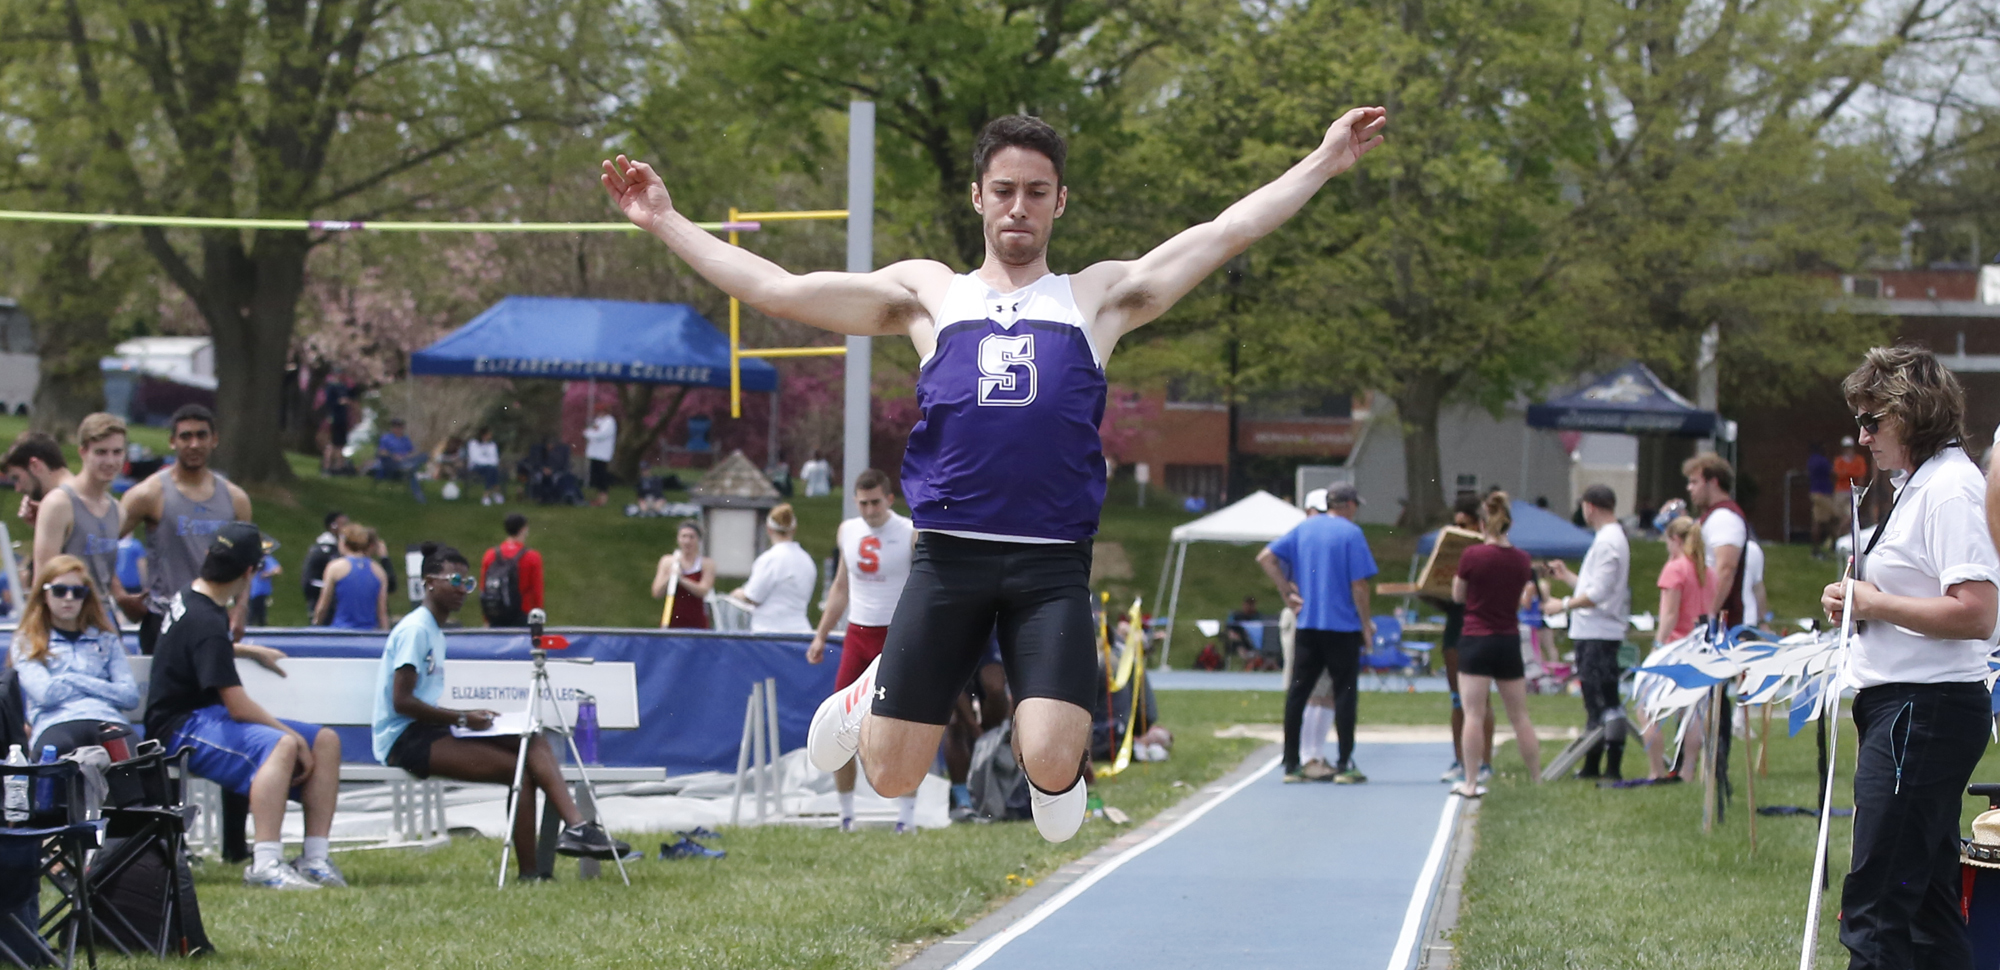 Senior Mark Merli was one of three Royals to win events on Saturday as Scranton opened its outdoor season at West Chester.